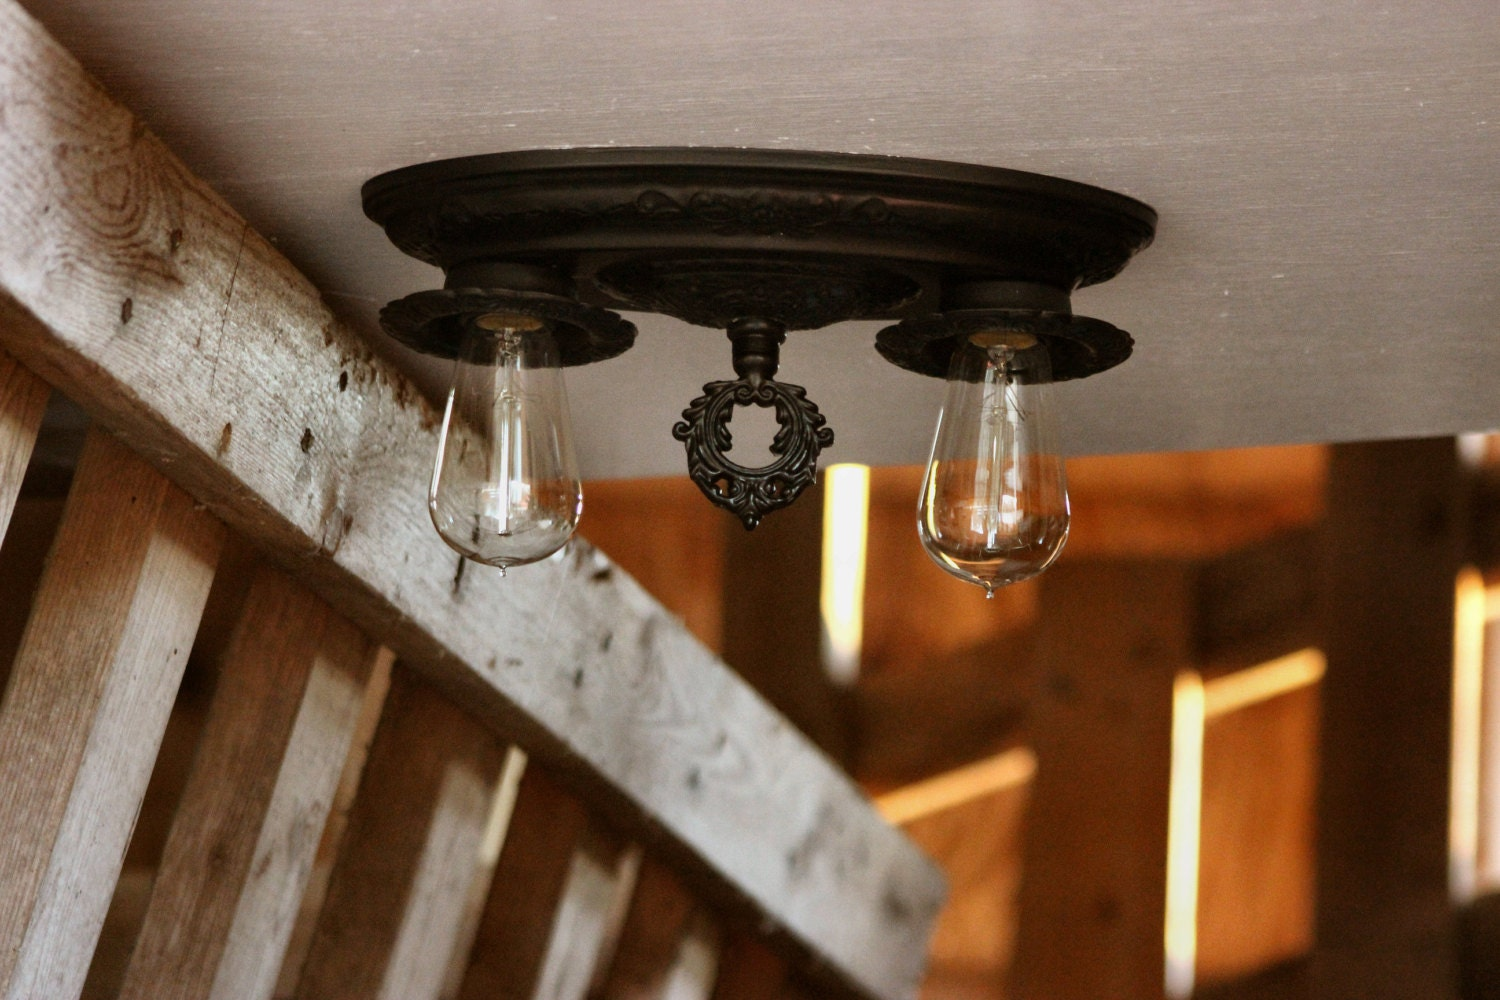 Westmenlights Vintage Small Ceiling Light Flush Mount: Antique Flush Mount FREE SHIPPING Antique Ceiling Light